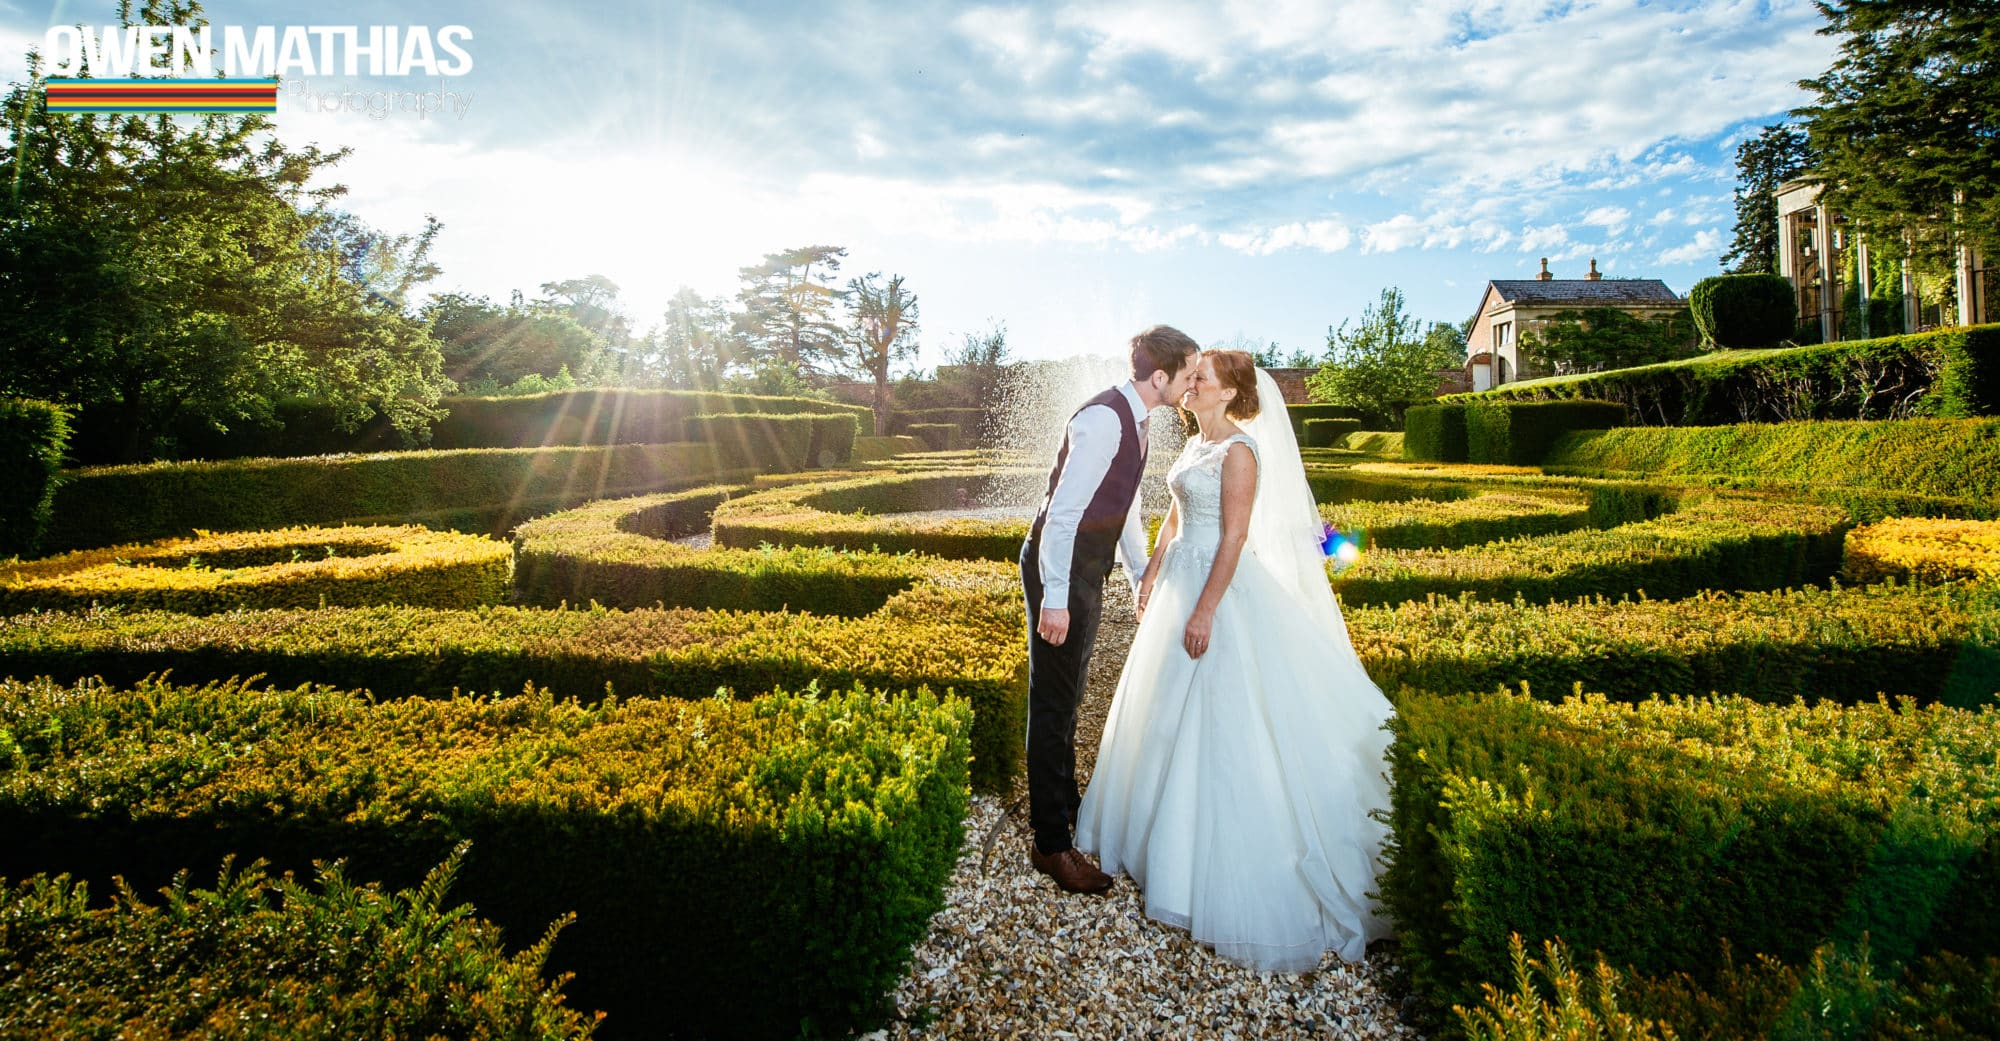 Alternative wedding photographers worchestershire